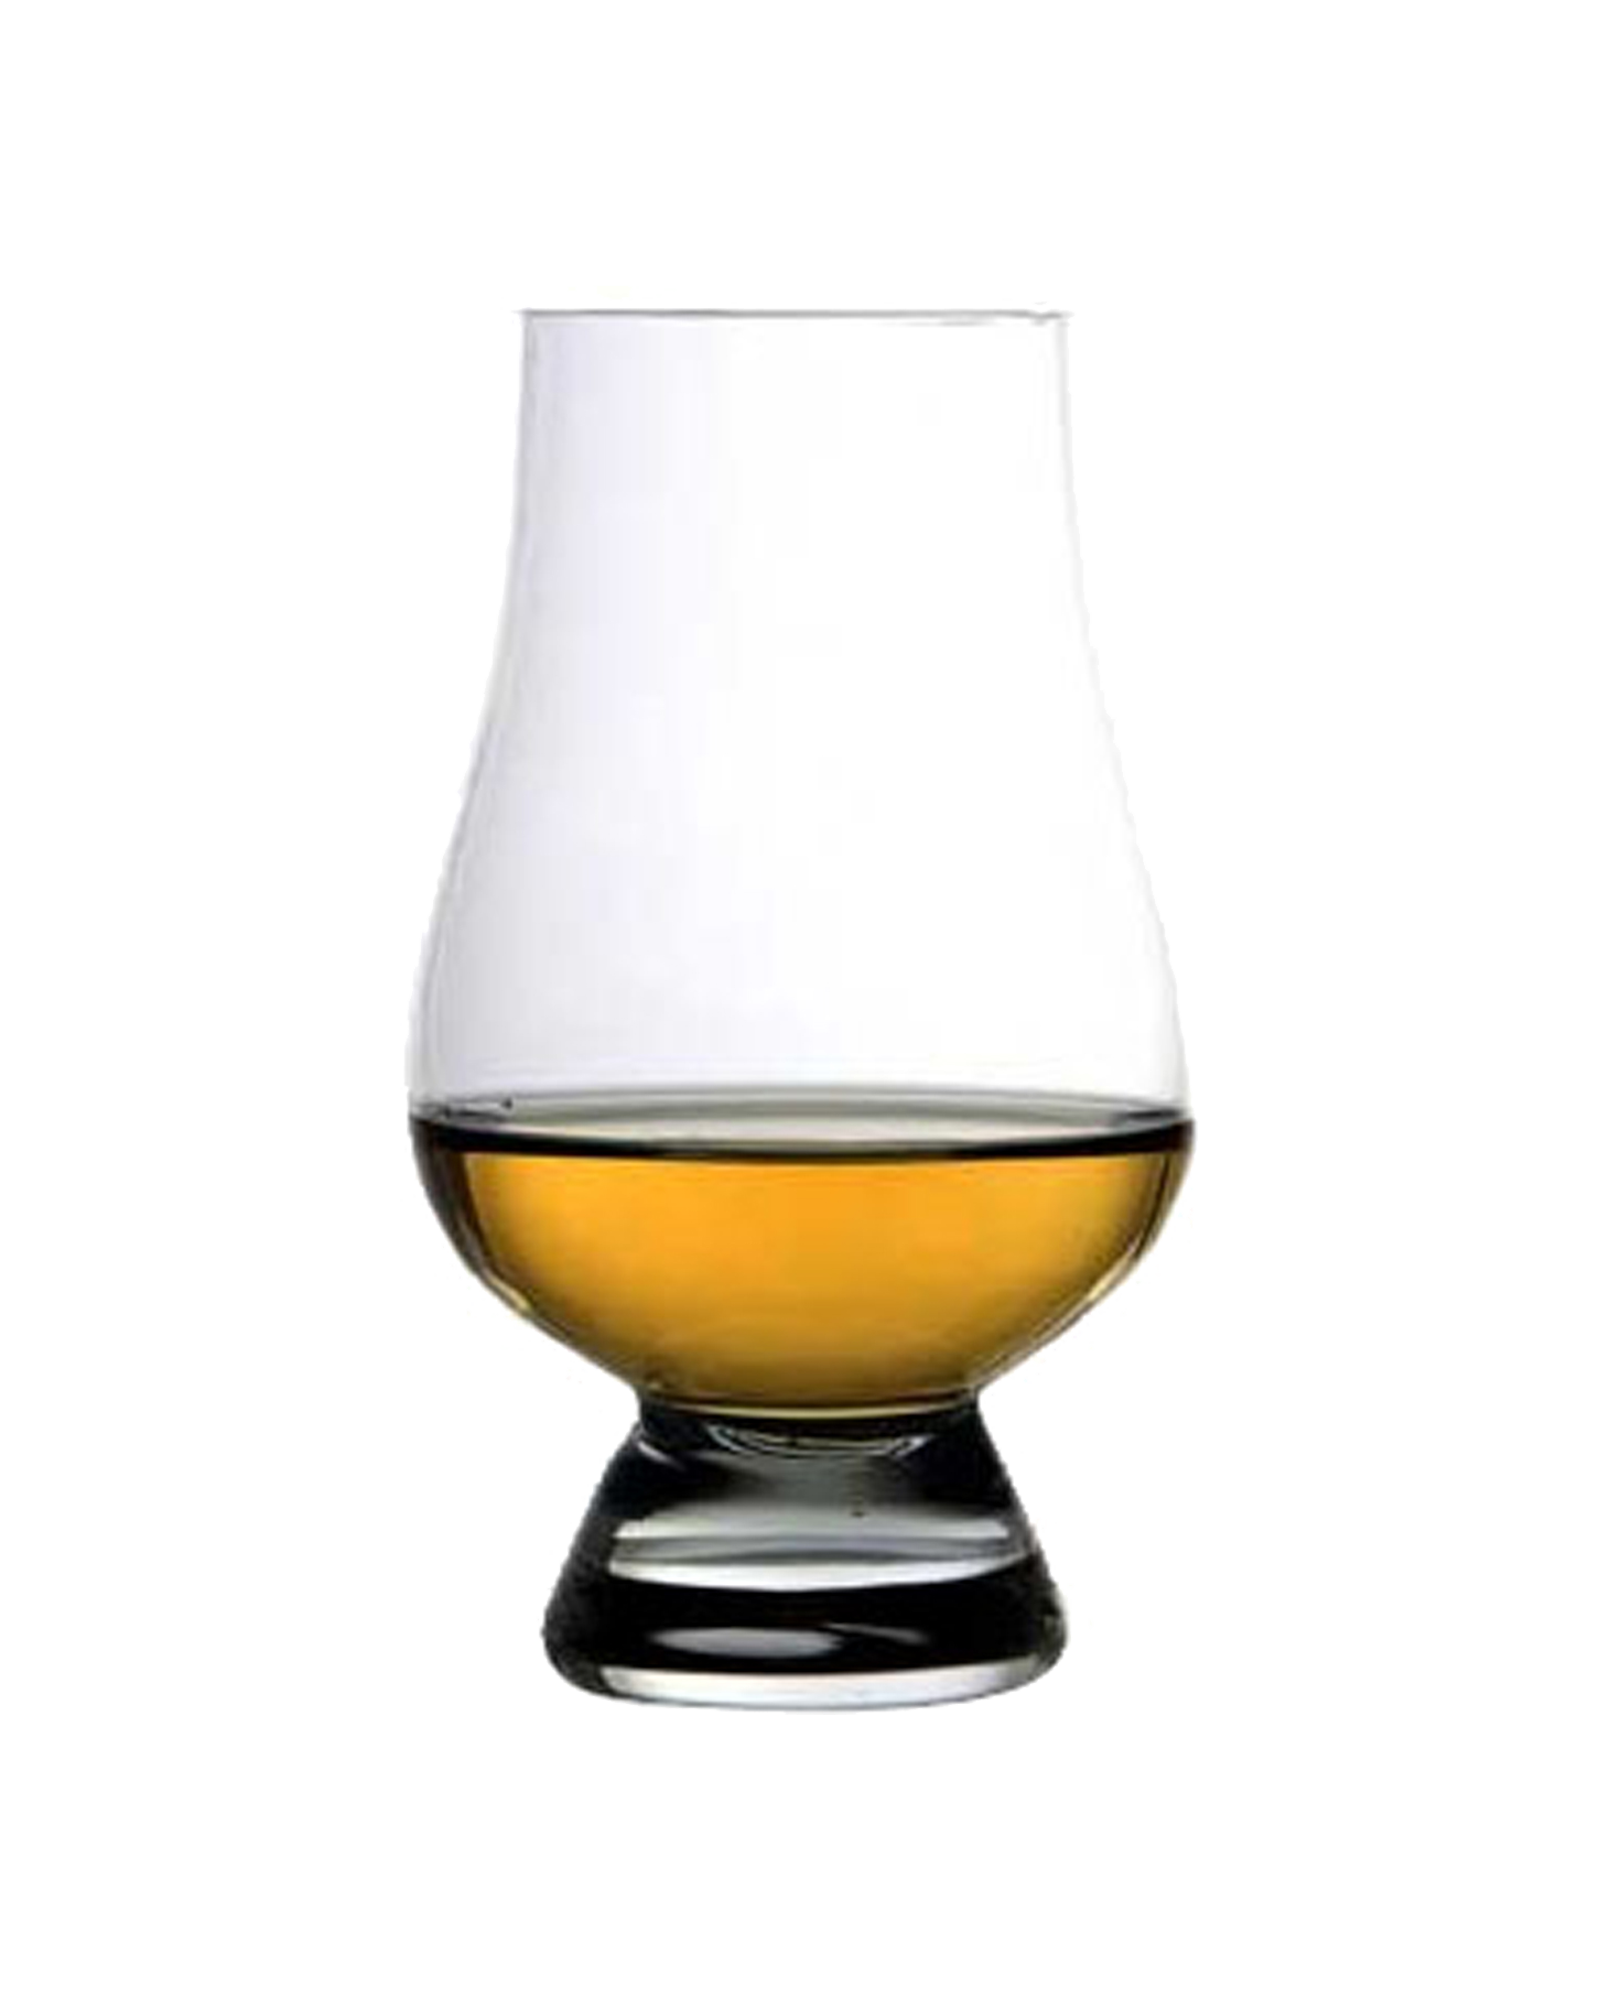 Glencairn Whisky Glass Png - Glencairn Whisky Glass | Dan Murphy's | Buy Wine, Champagne, Beer ...